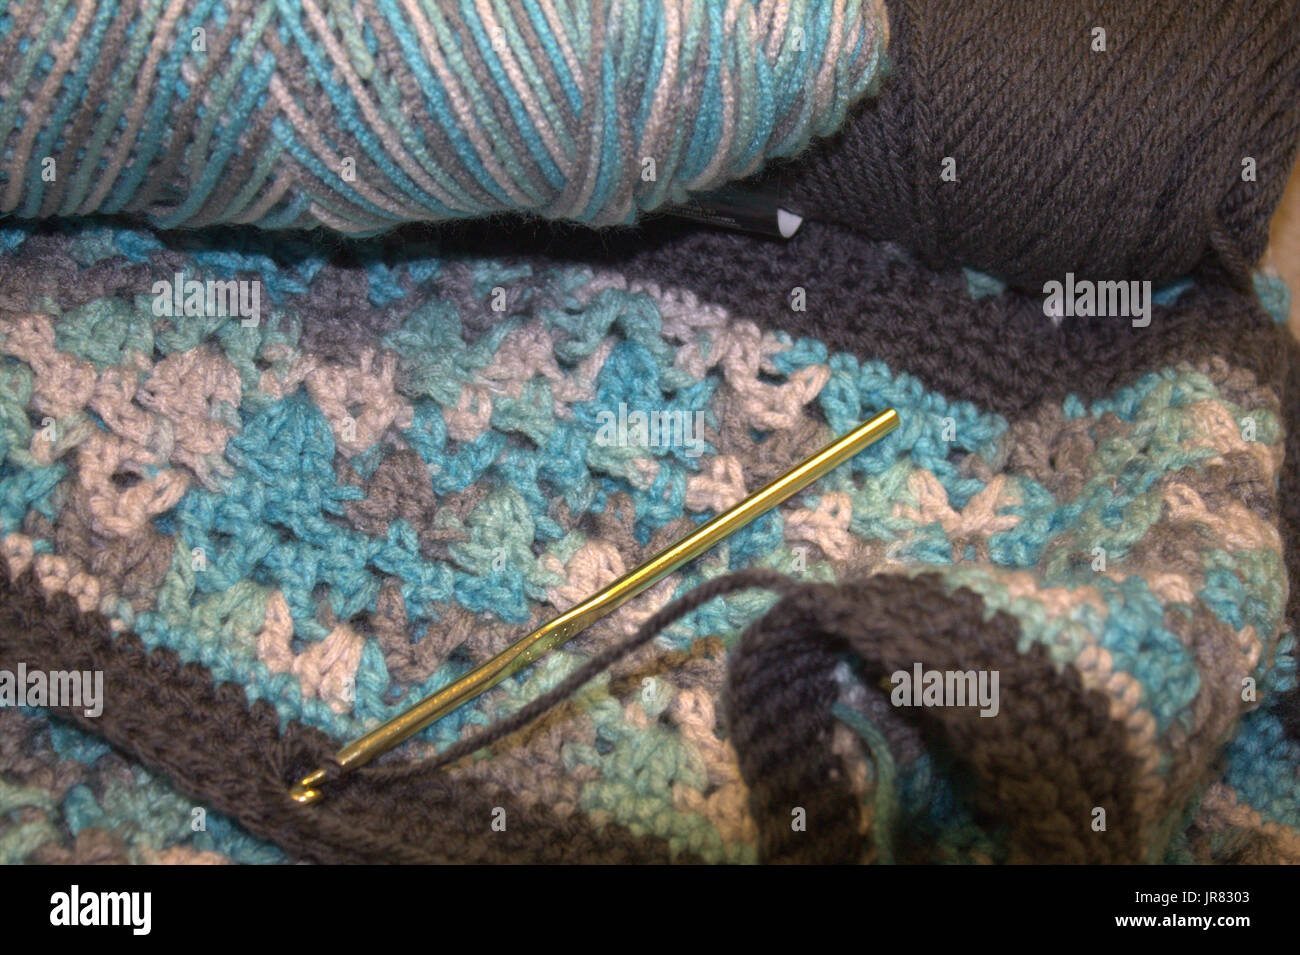 Crochet in blues and grays, with crochet needle. - Stock Image